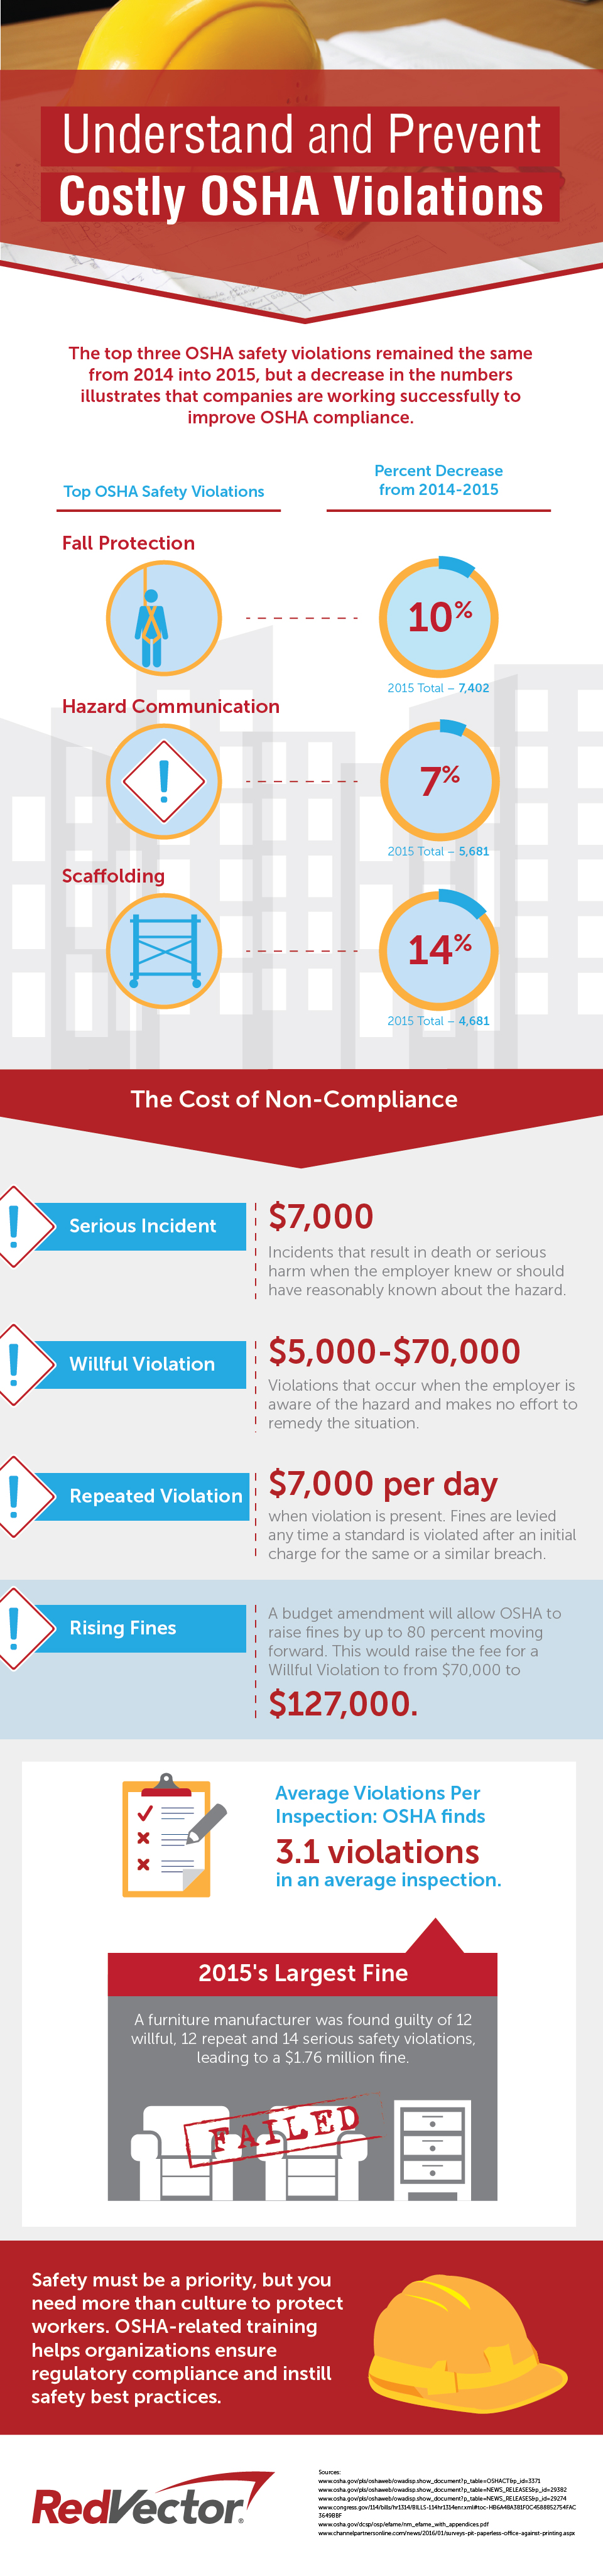 Understand and Prevent Costly OSHA Violations: Infographic